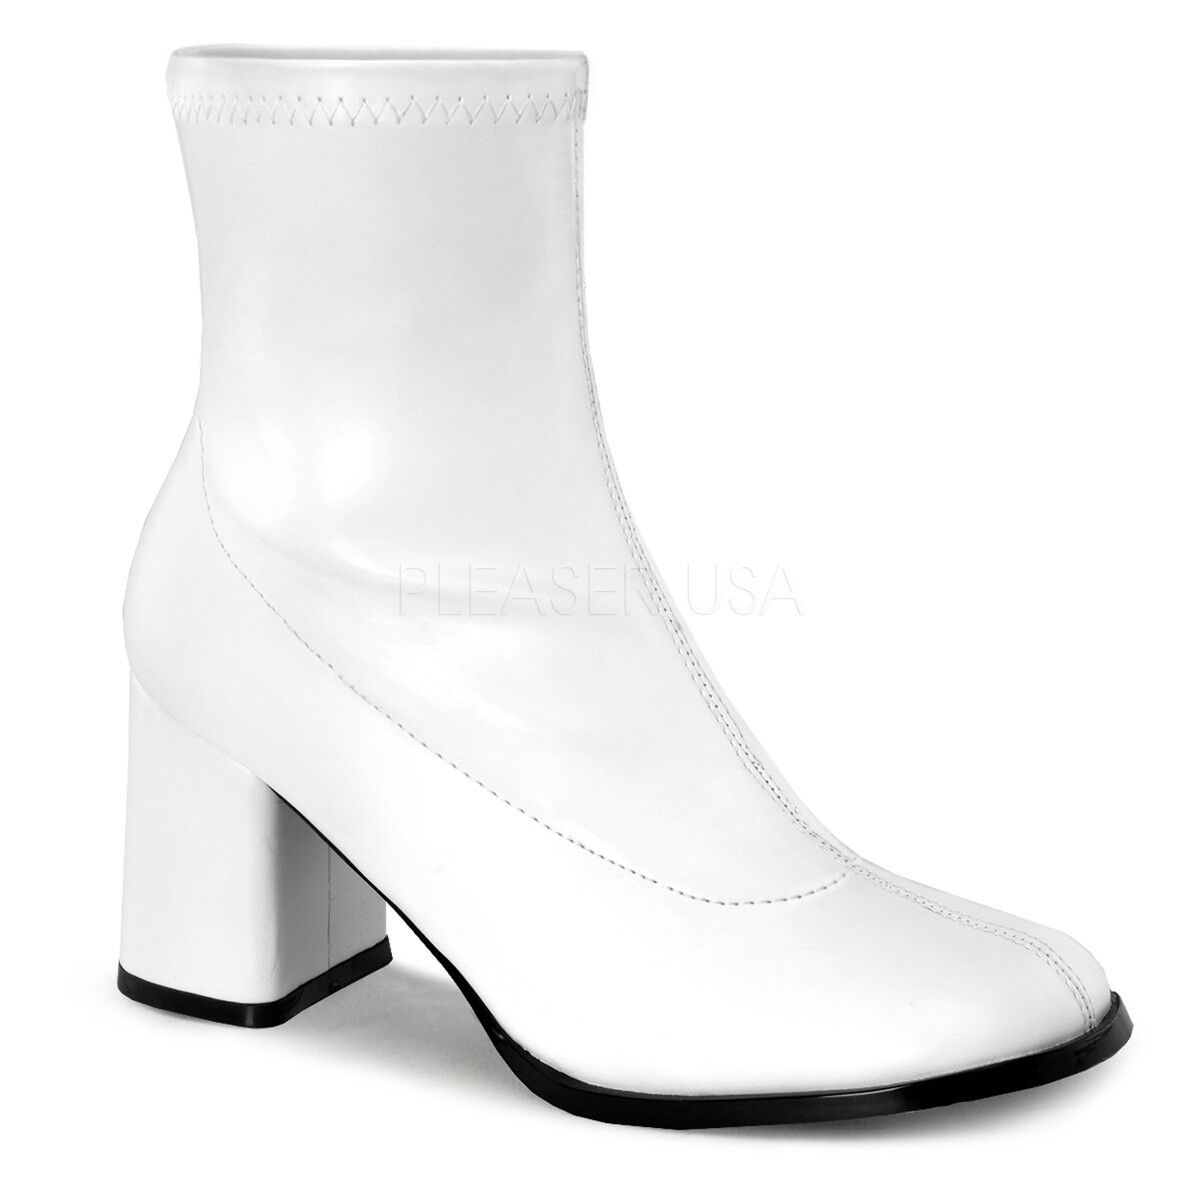 GOGO150 WPU Sexy 3  Heel Gogo Dancer White Ankle Boots Halloween Costume shoes